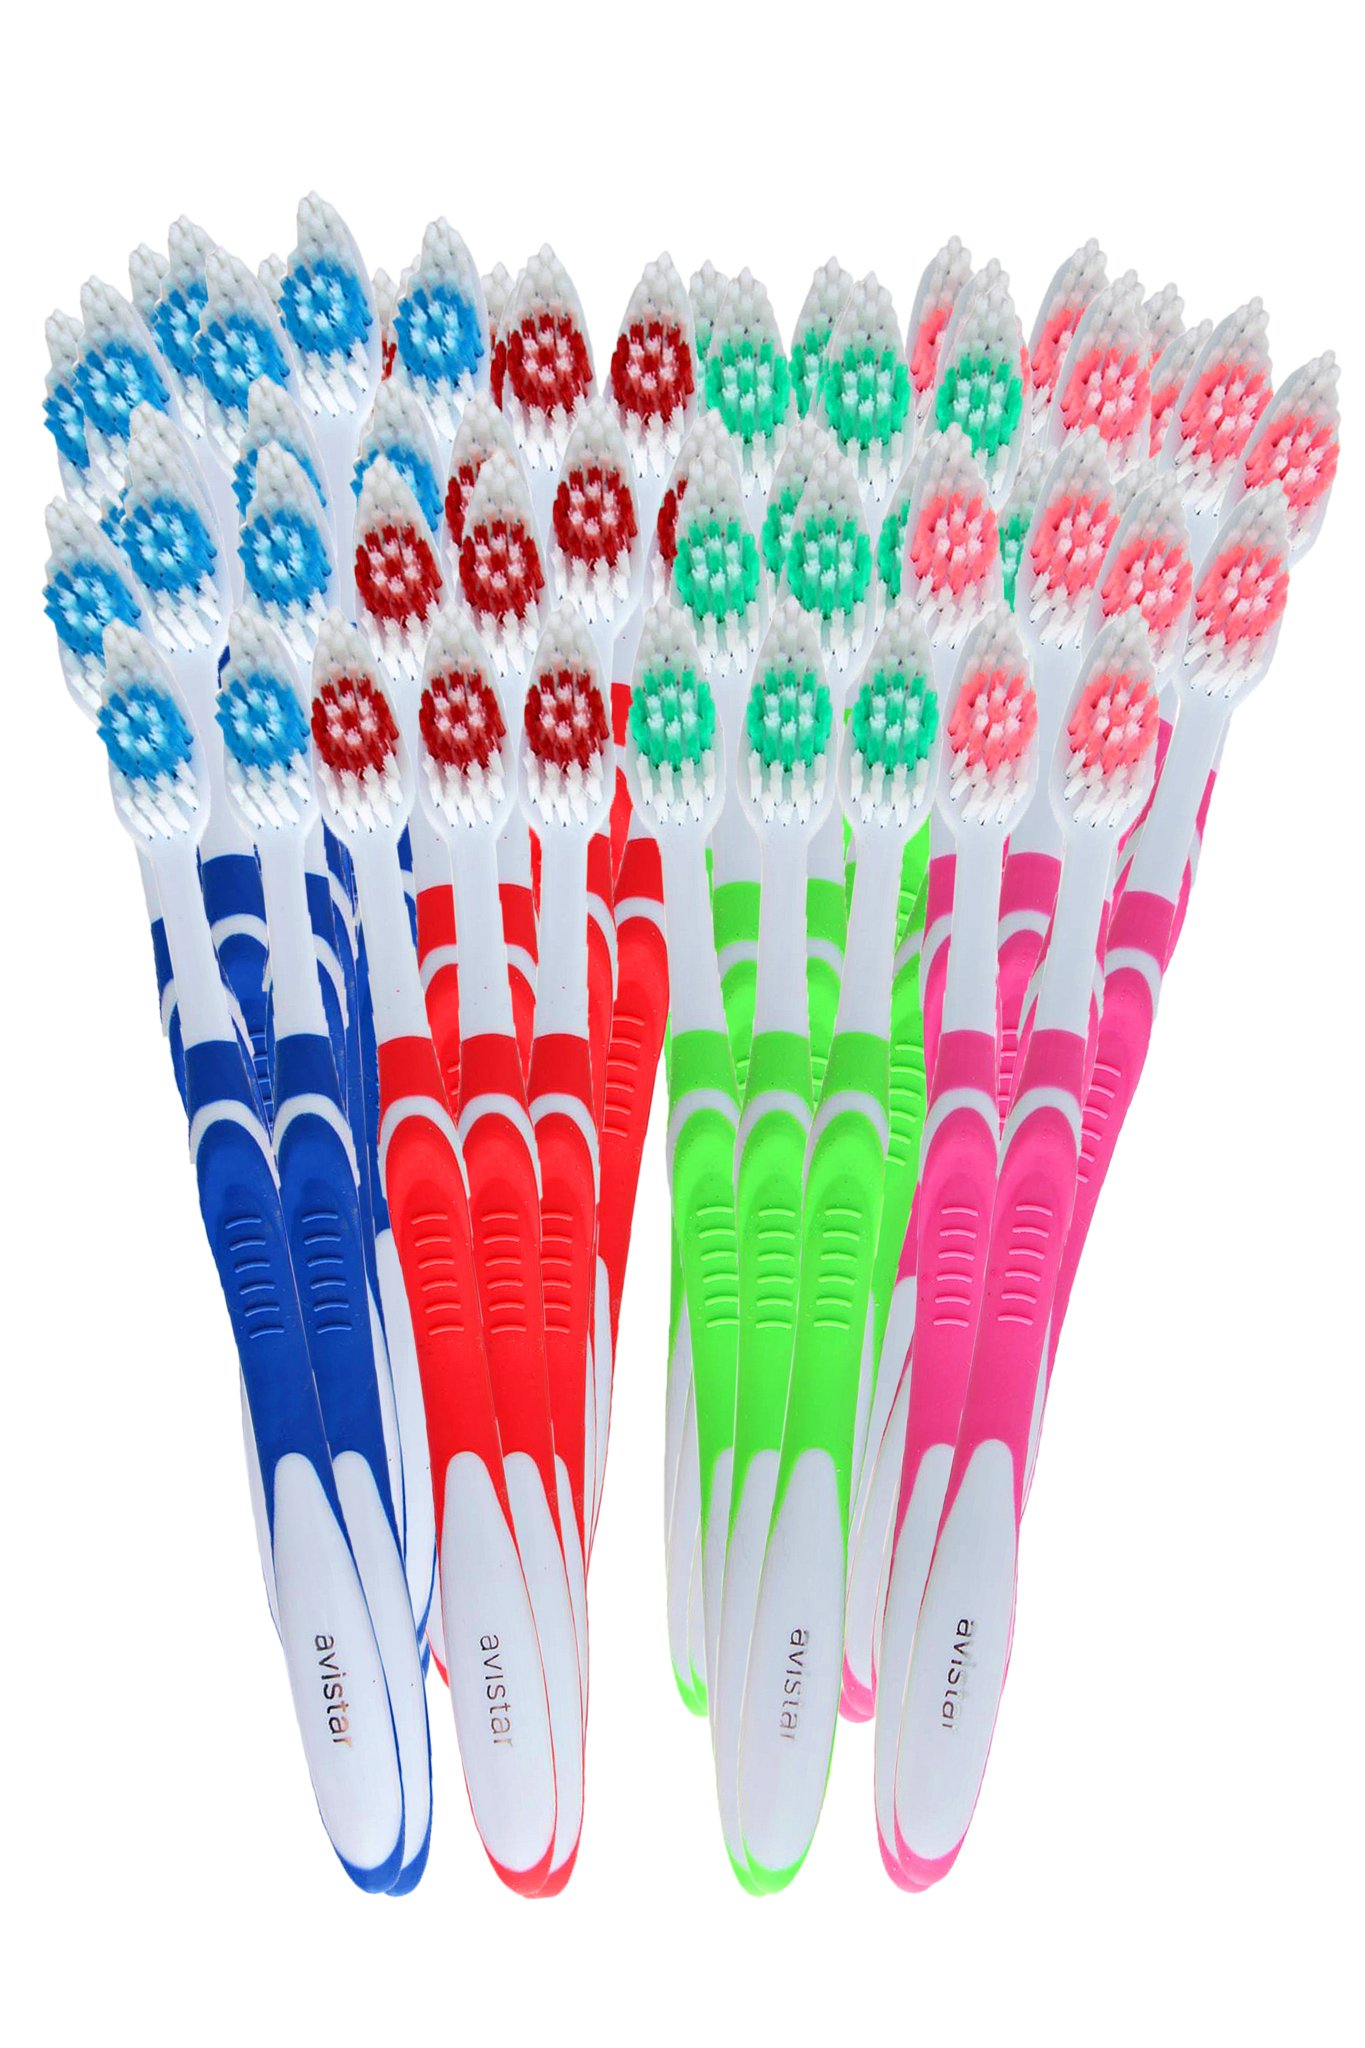 148 Individually Packaged Large Head Medium Bristle Disposable Bulk Toothbrushes - Multi Color Pack - Convenient & Affordable by Avistar